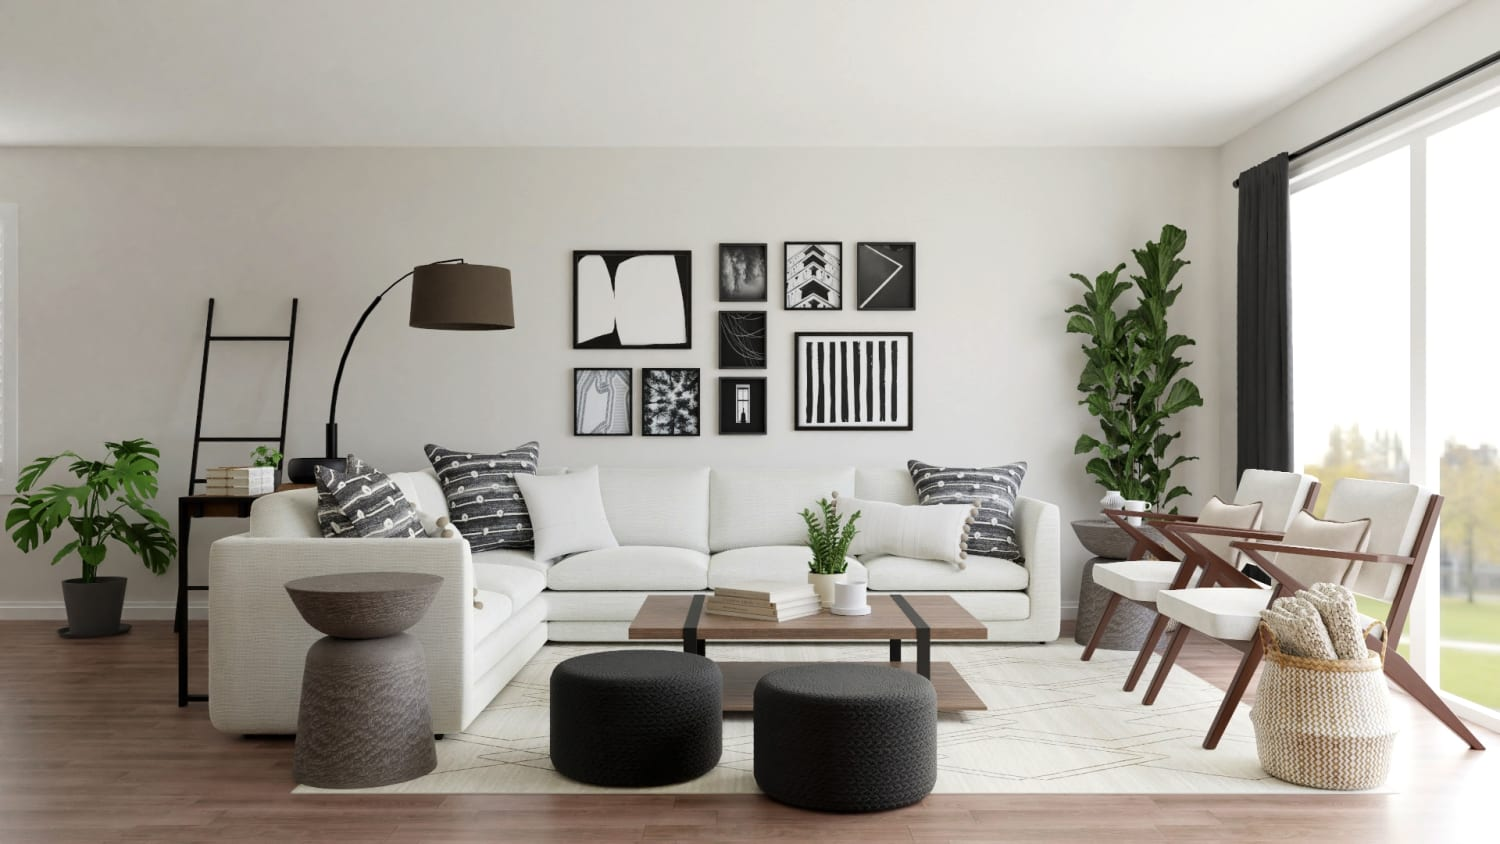 Chic Mid-Century Urban Living Room with Modern Touches Design By Spacejoy